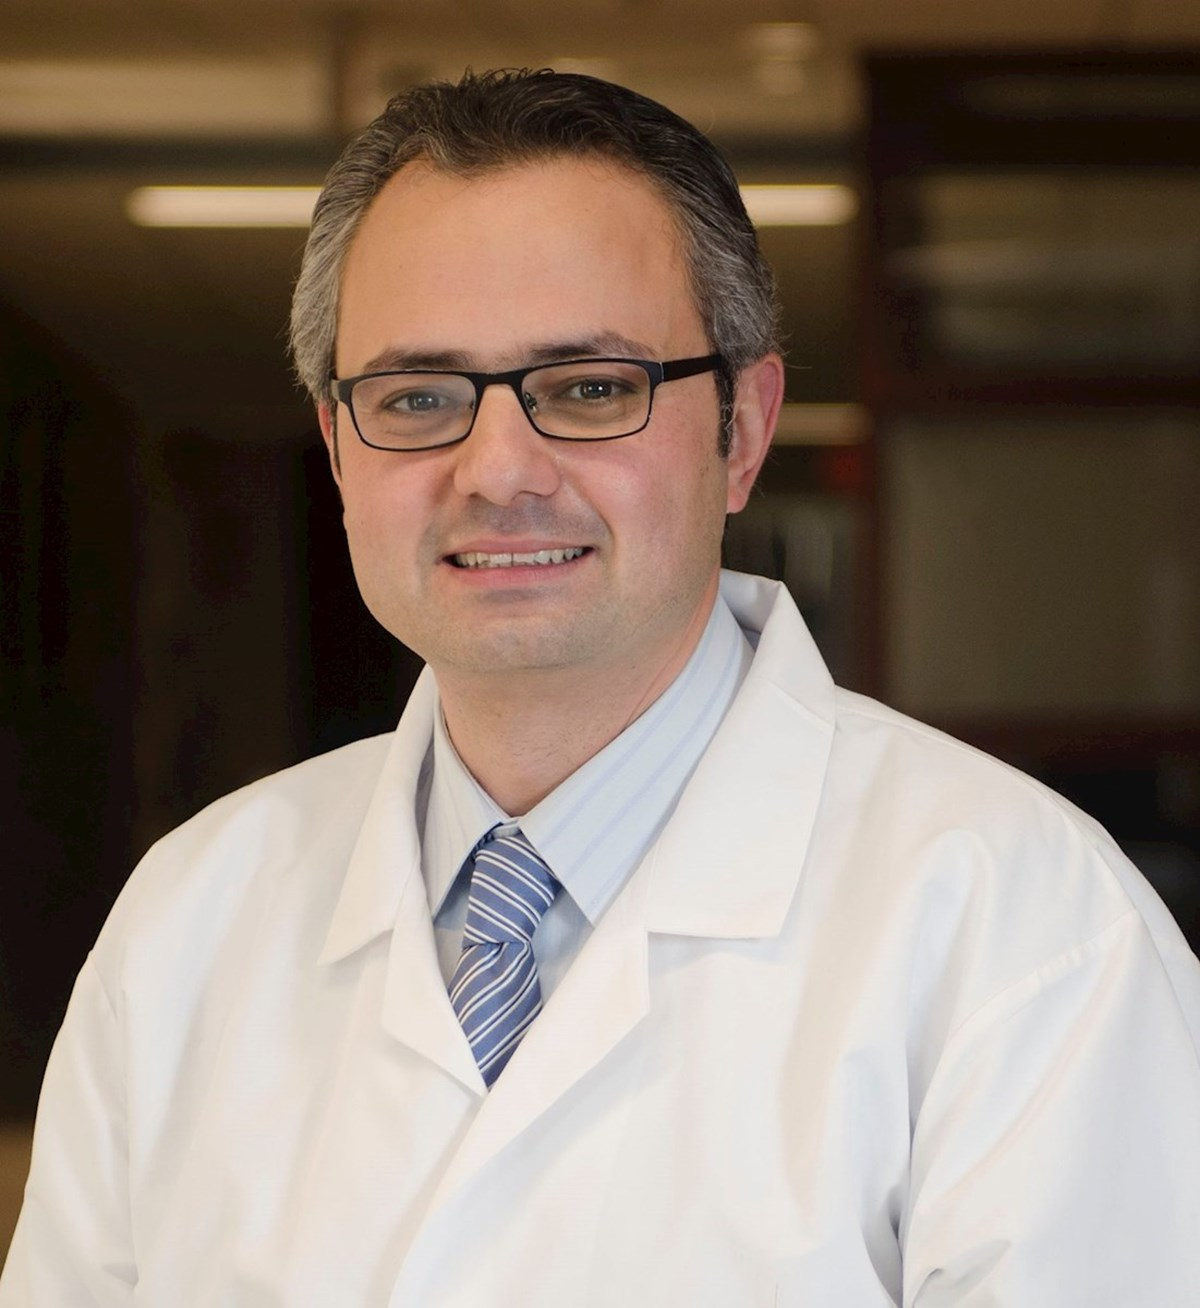 Center for Women's Health Welcomes Dr. Mohamad Hamdi